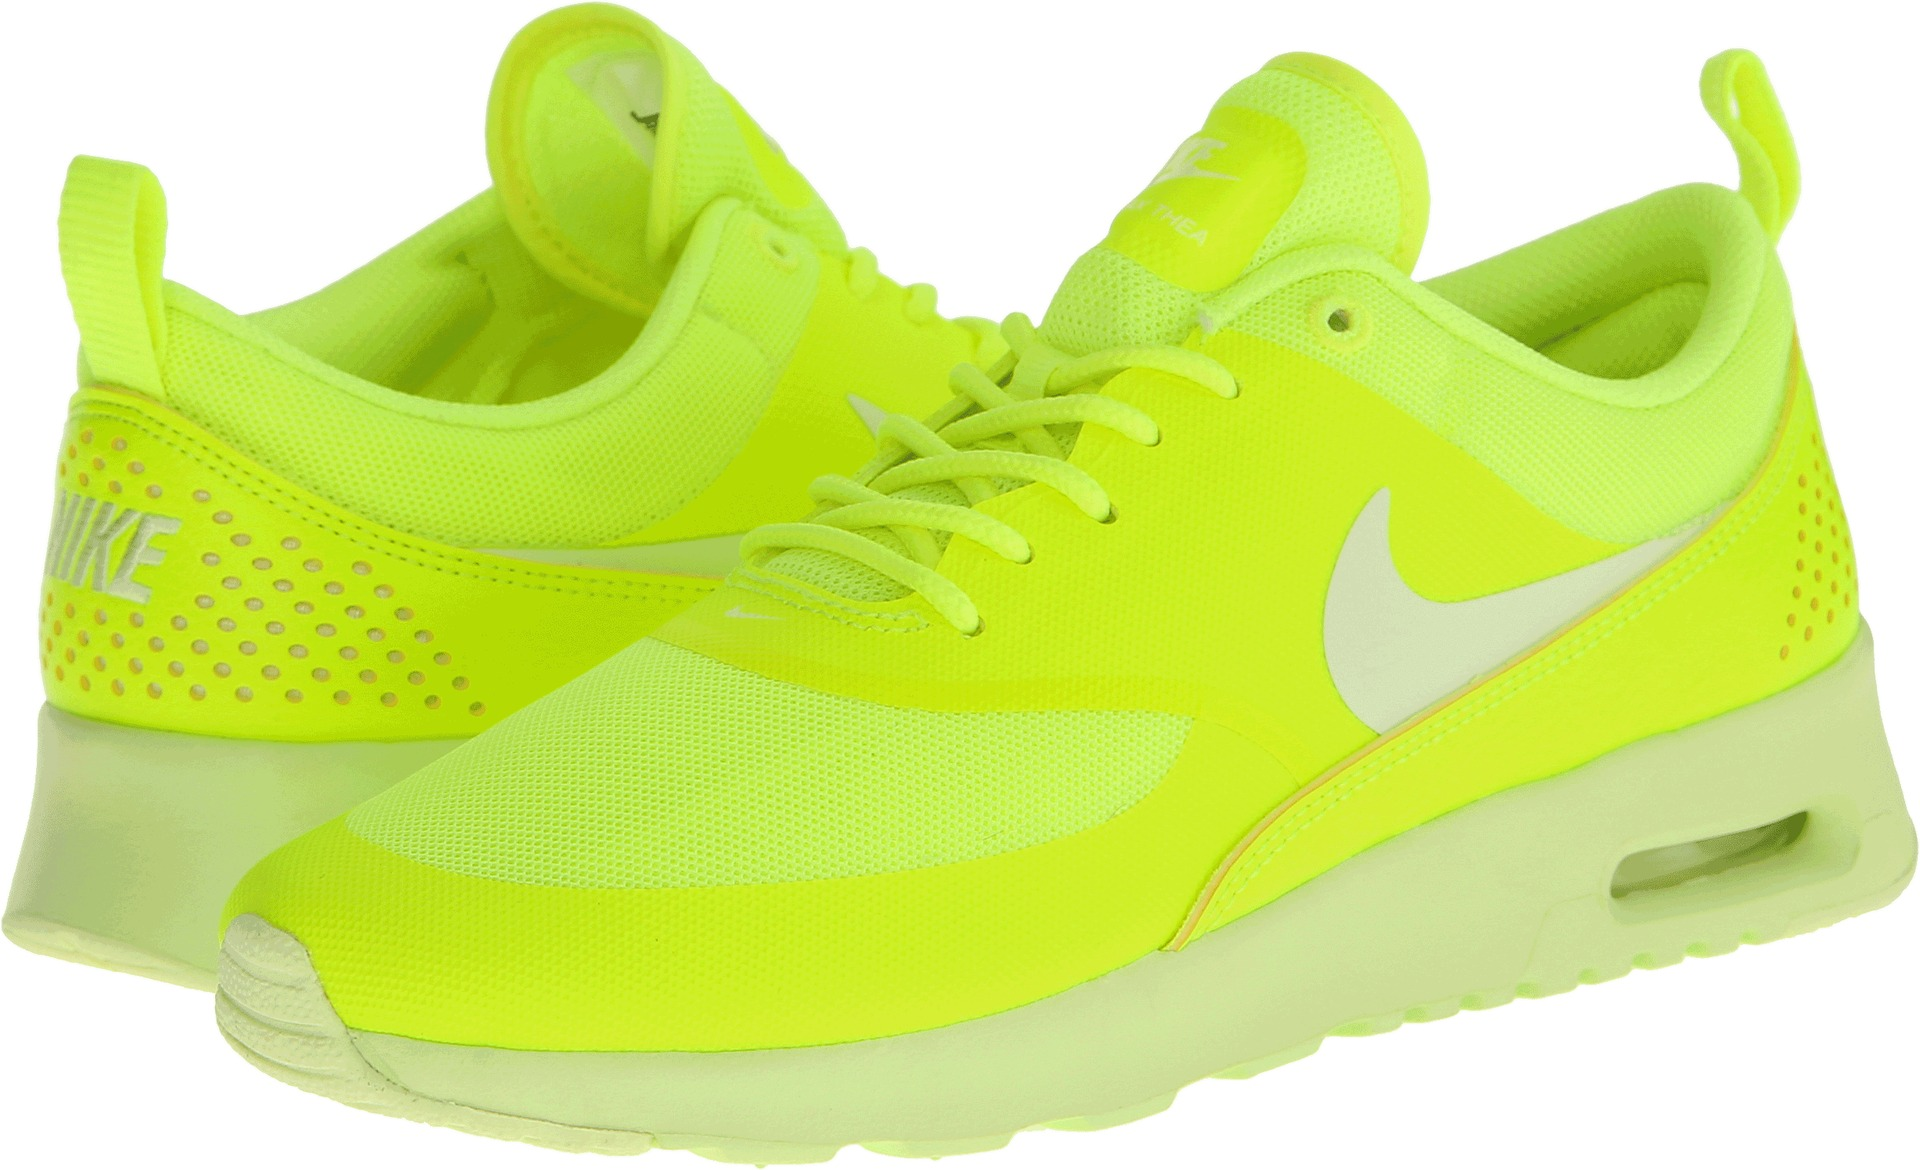 huge discount 236ac 918b6 Nike Air Max Thea VoltLight Liquid Lime - Zappos.com Free Sh